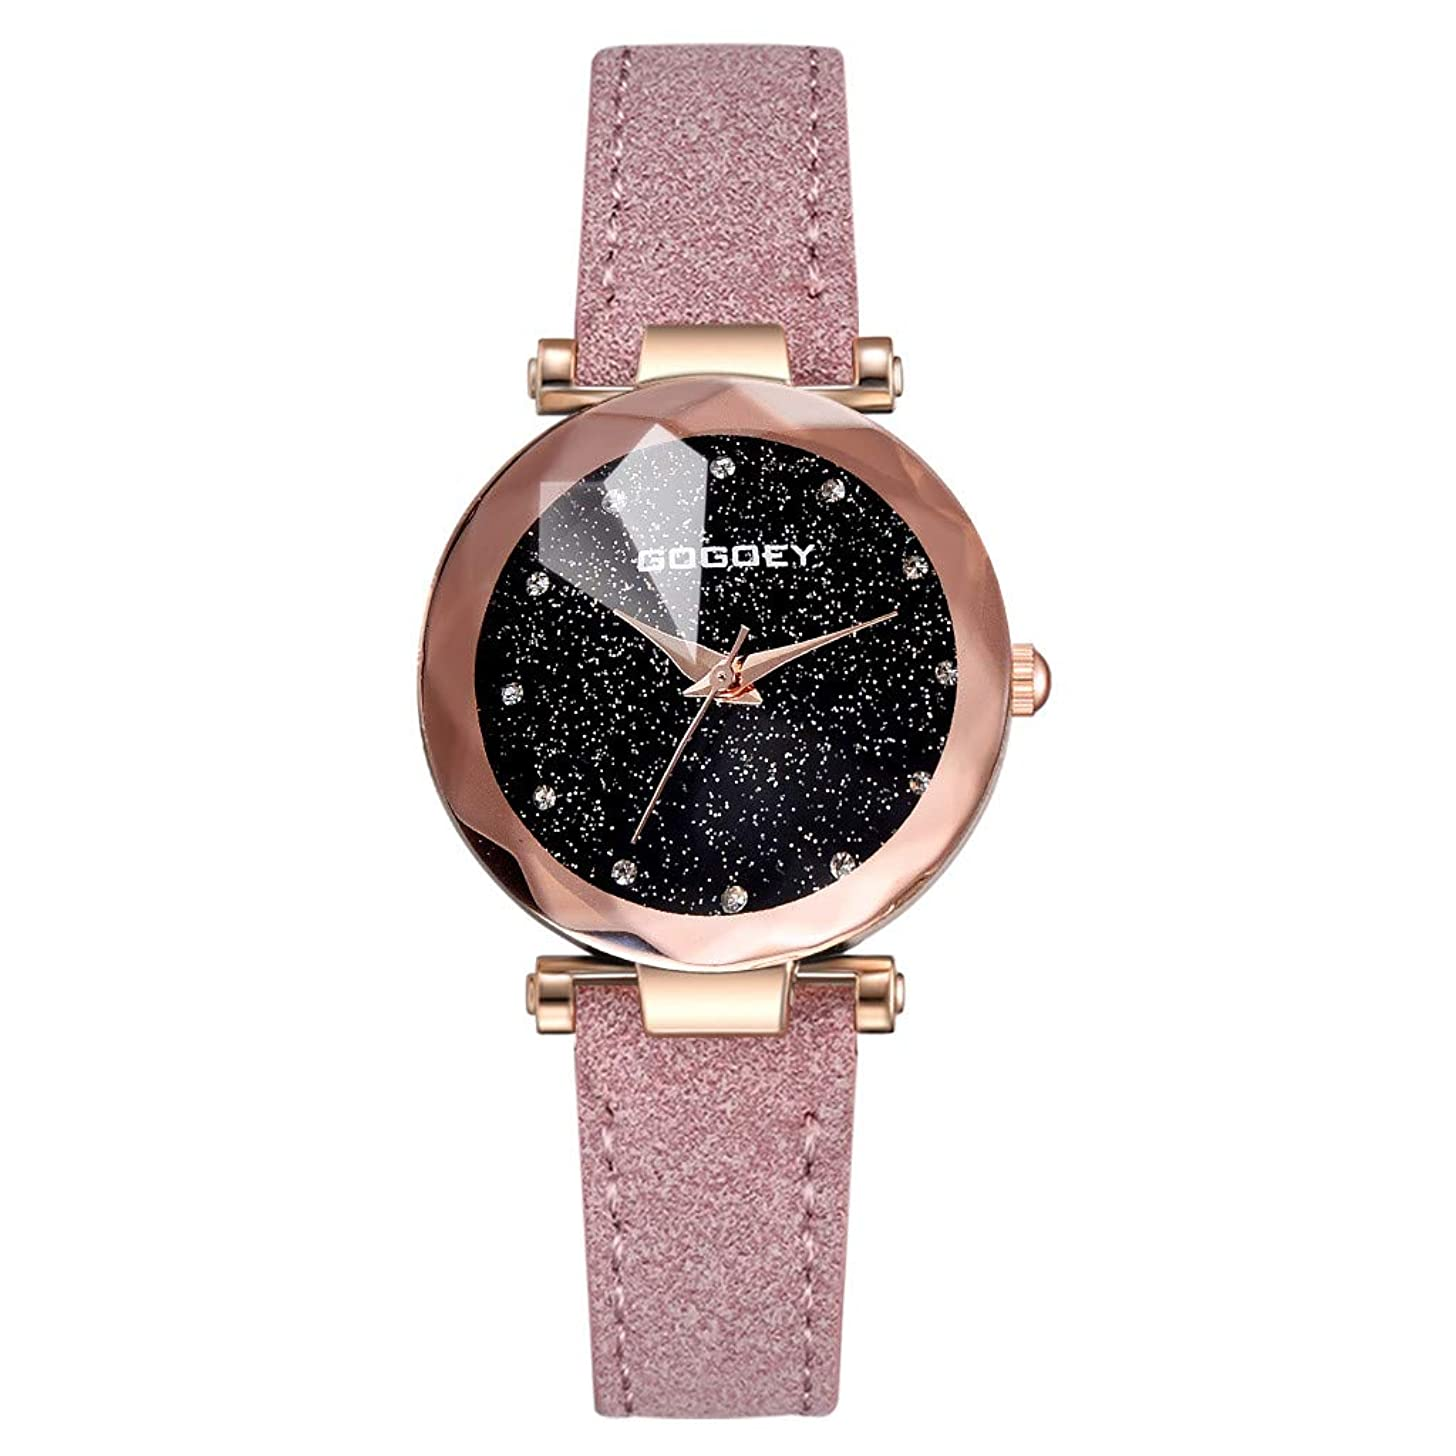 LUCAMORE Watch Womens Quartz Lady Watch Wrist Watch Creative Starlight Dial Birthday Gift with Black Leather Band